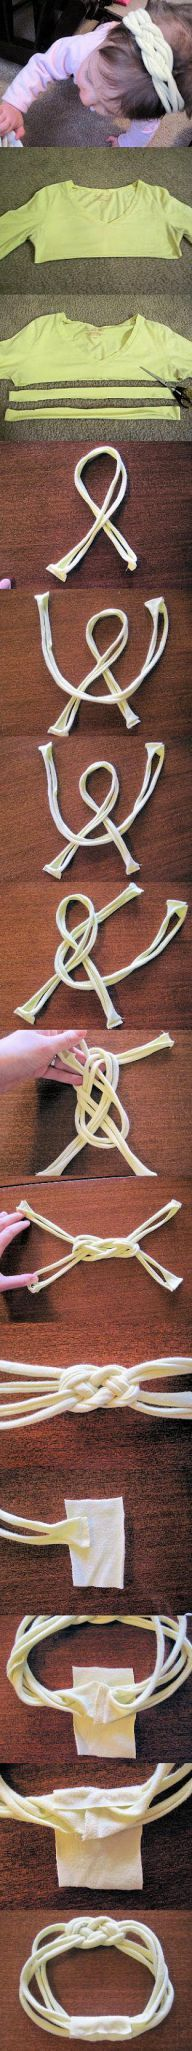 DIY Knot Headband--good for grownups too!